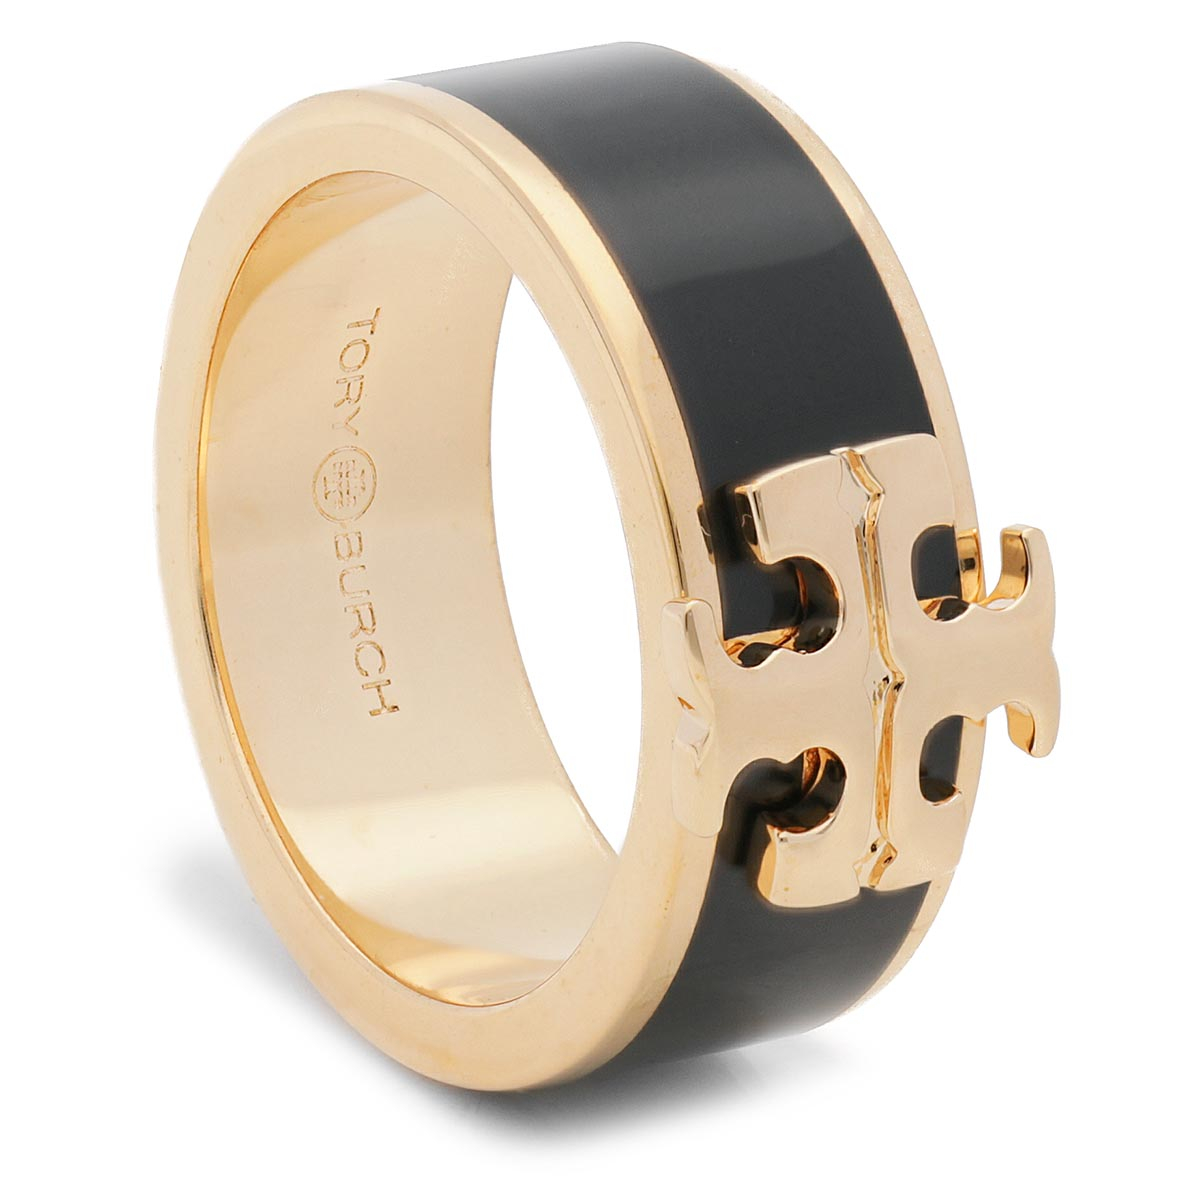 Image of Anello TORY BURCH - Kira Logo Ring 60359 Tory Gold/Black 720